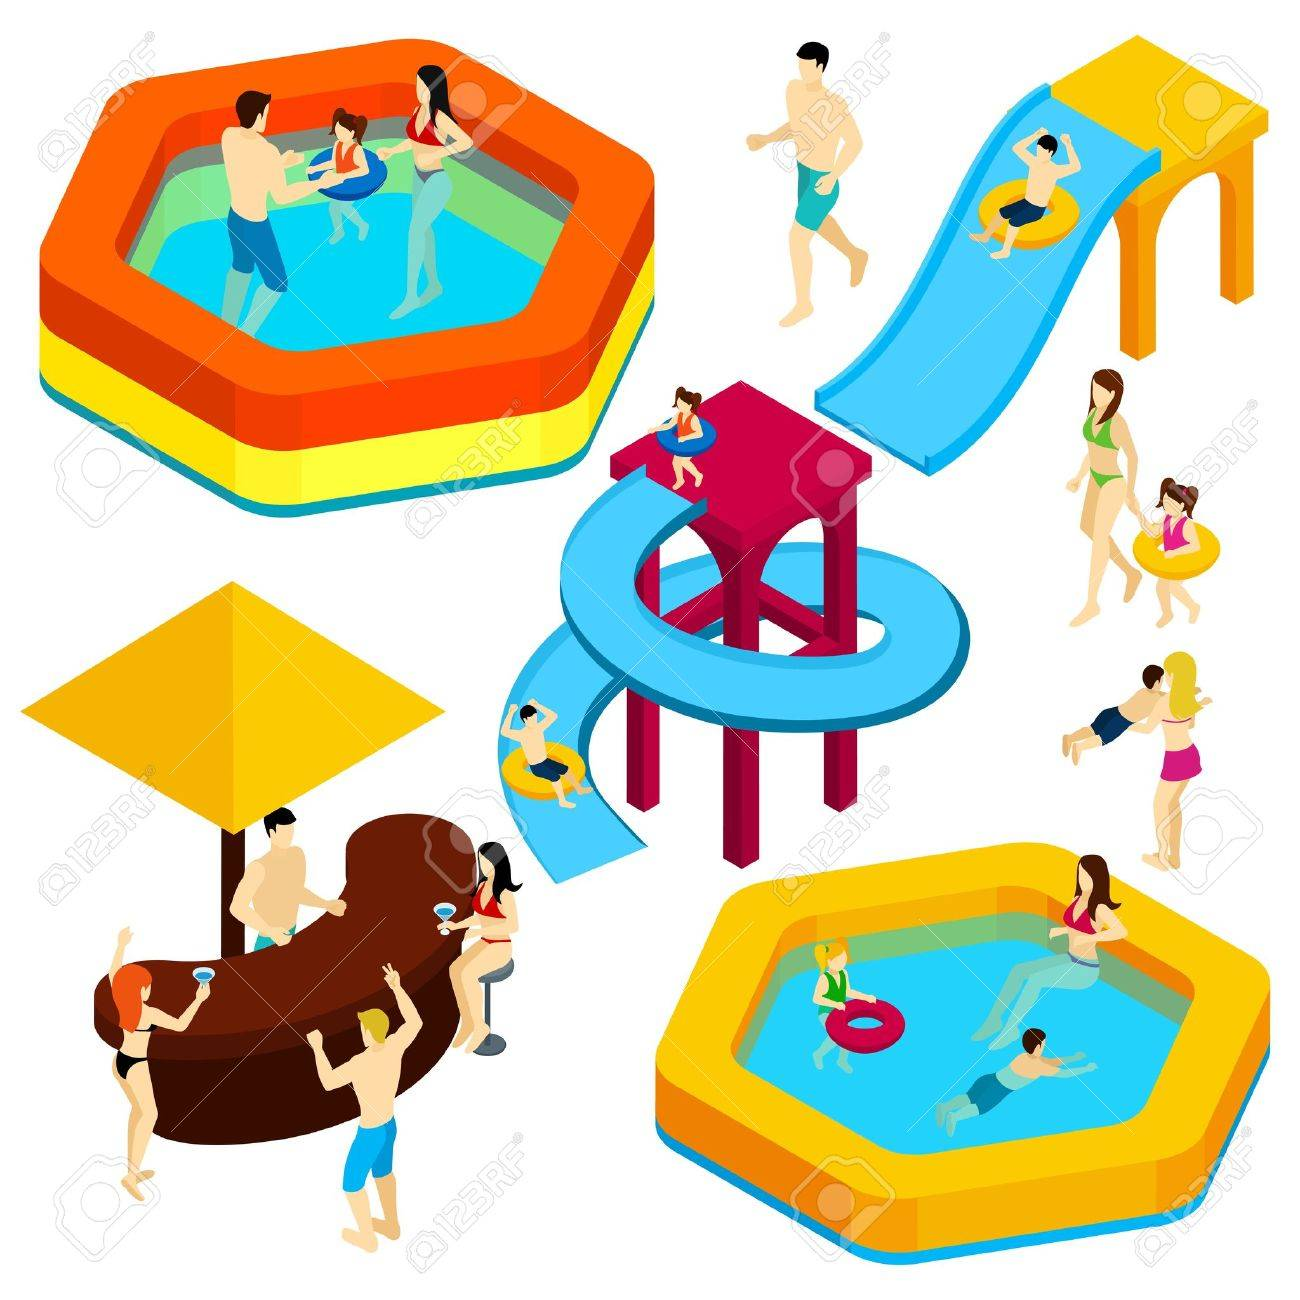 1300x1300 Water Amusement Park Playground With Slides And Splash Pads